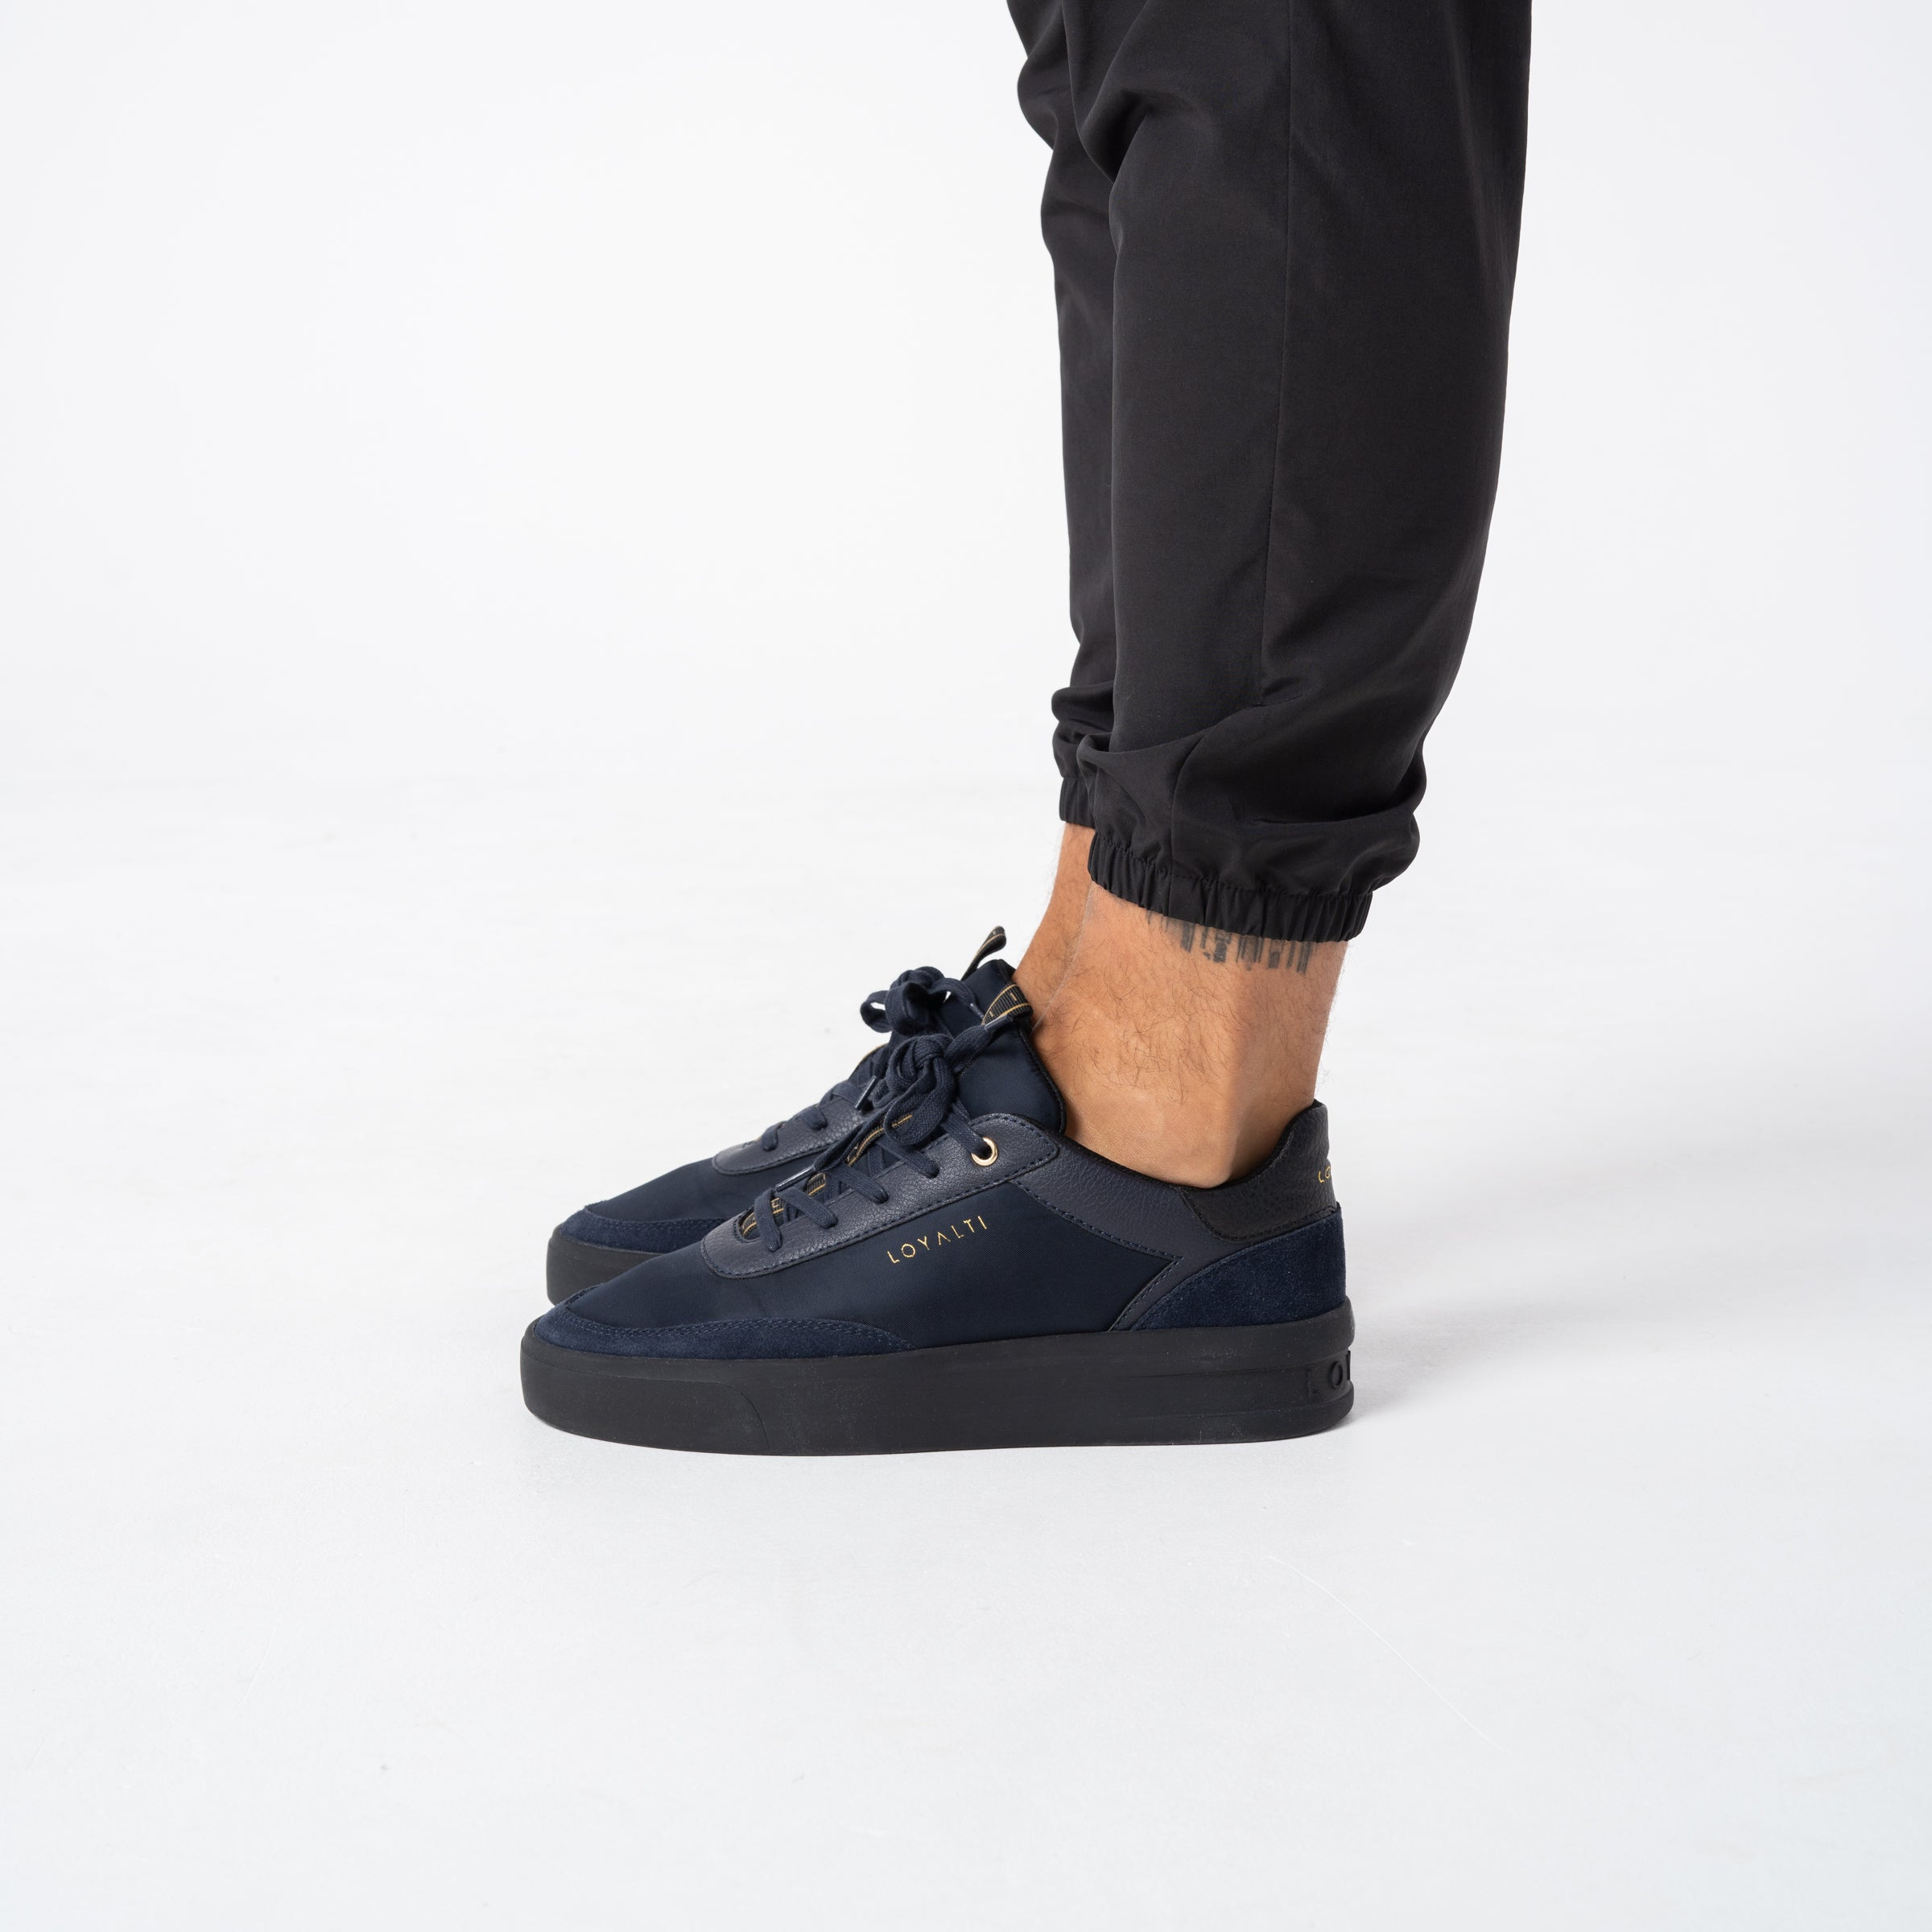 Deuces Trainer - Navy / Black